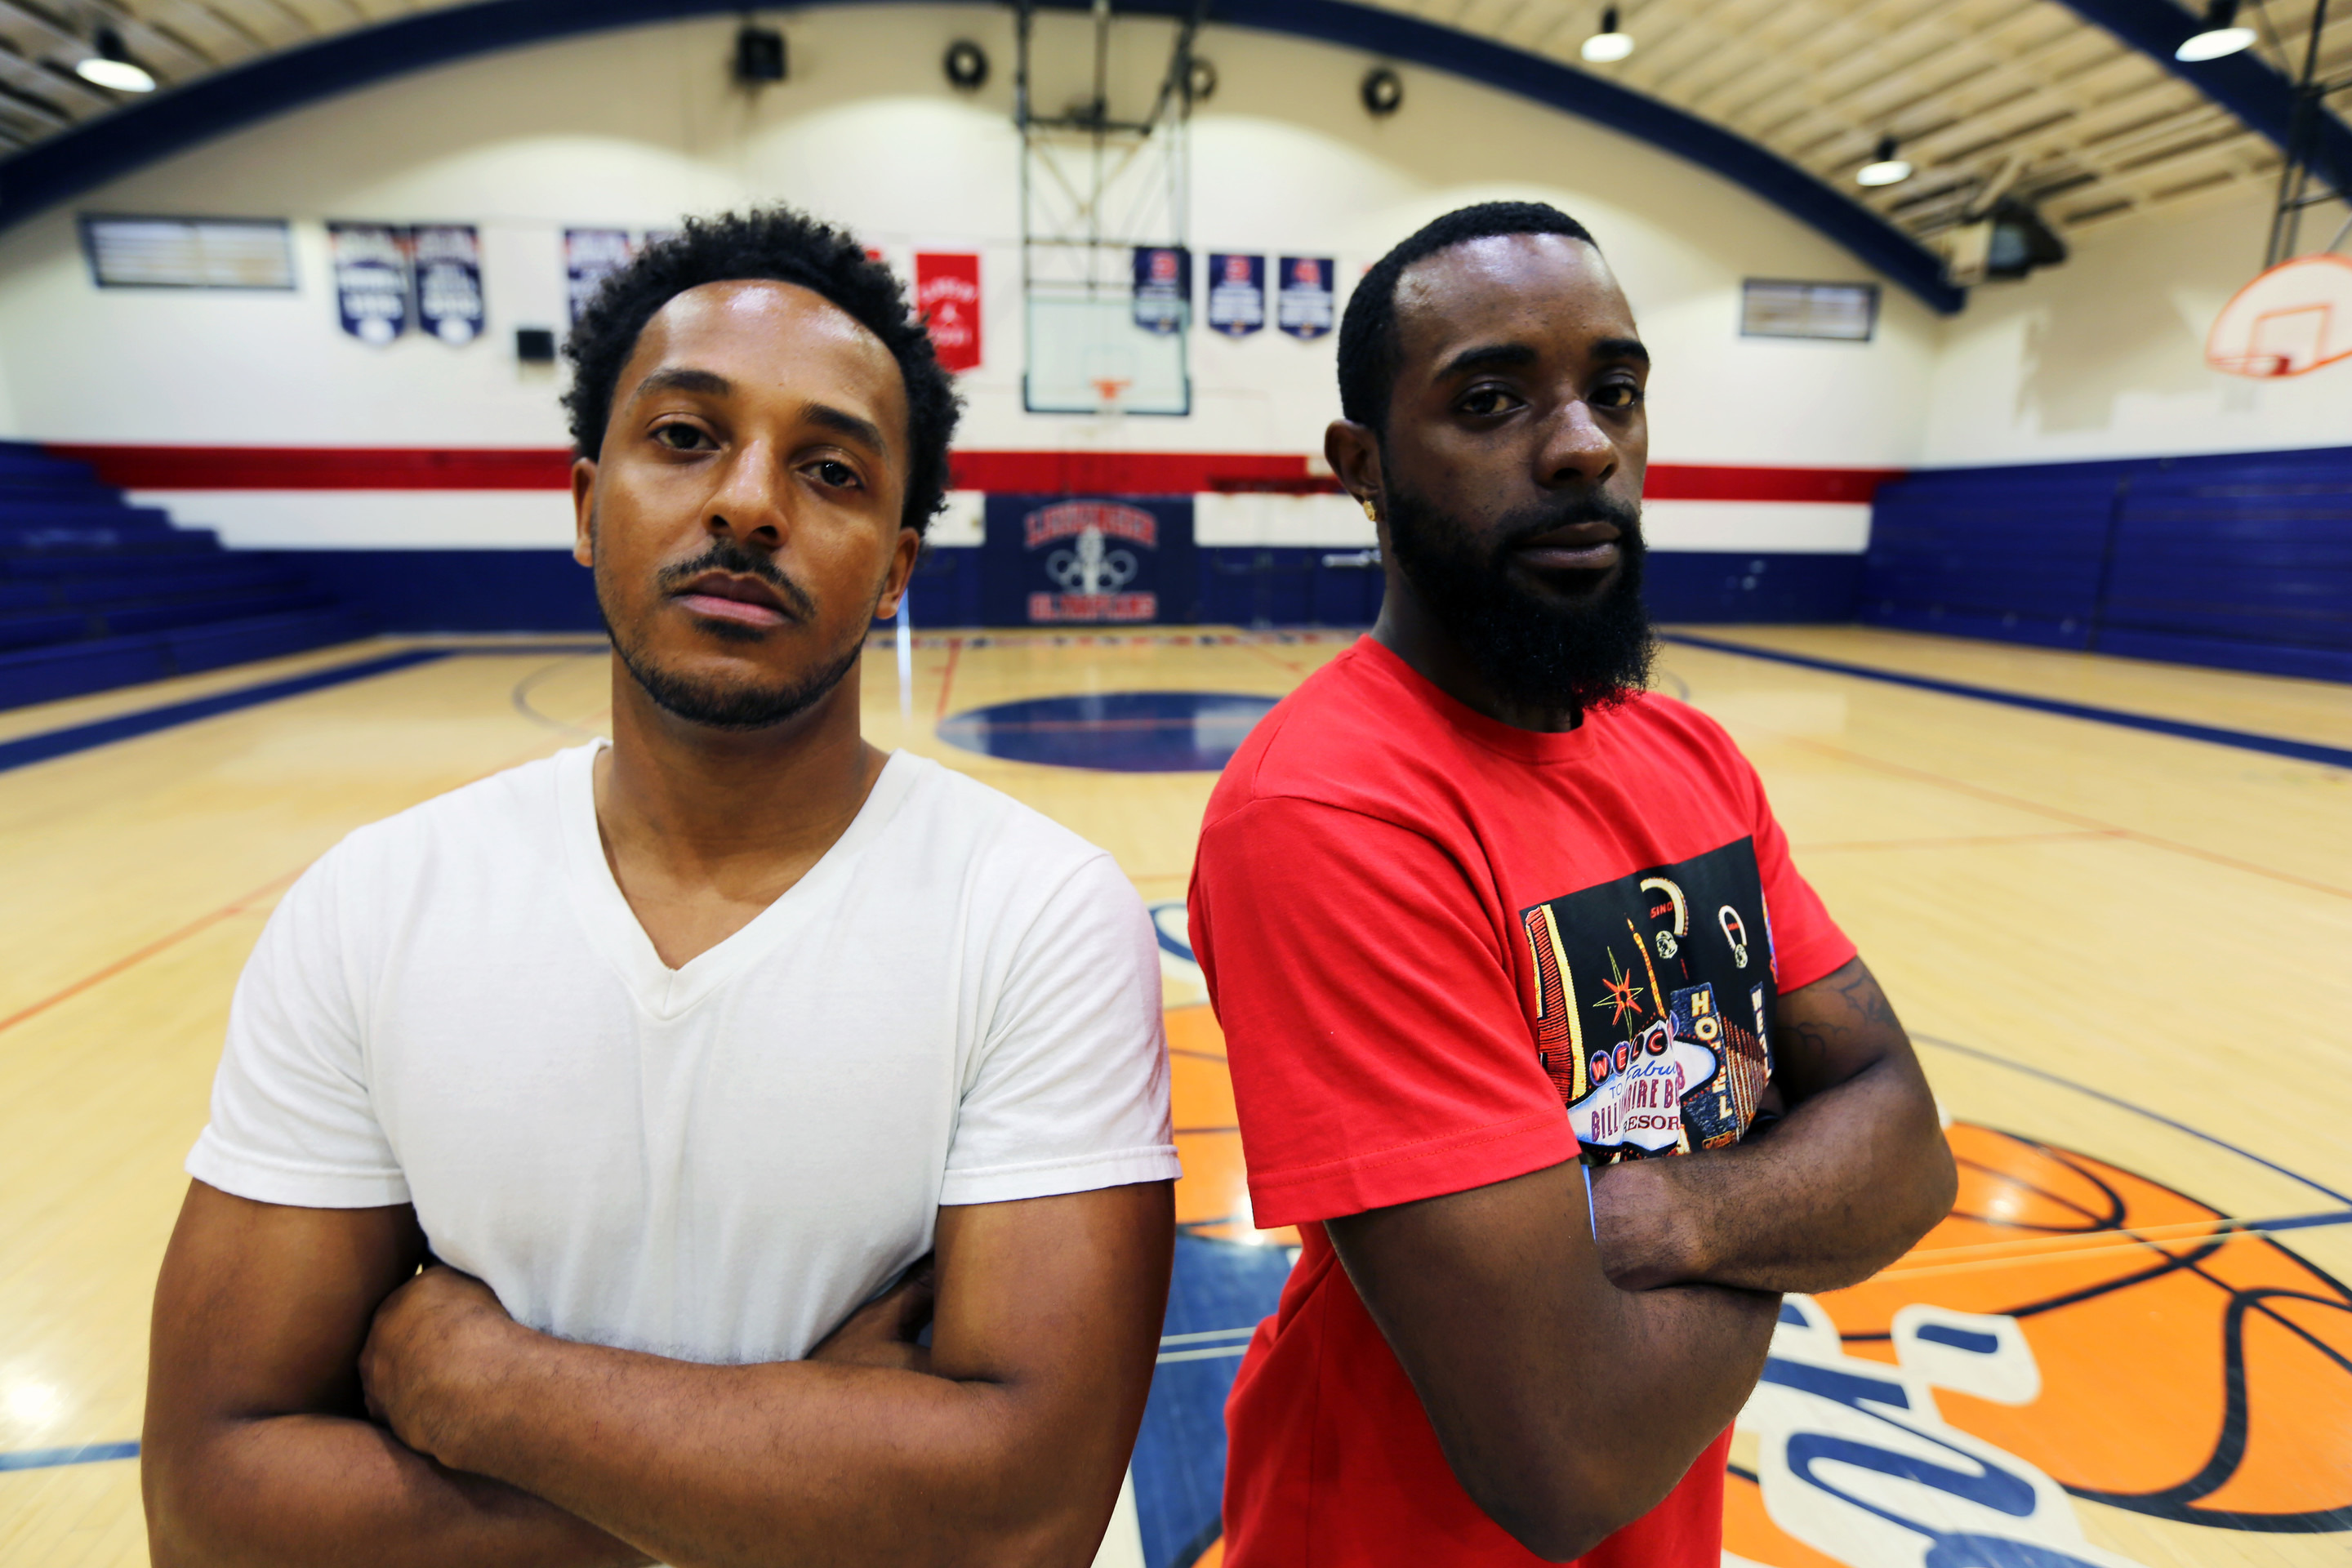 8d9ff5b69a66 Barrs  teammates Mykell Mathieu and Patrick Cleveland are now assistant  coaches at Leuzinger